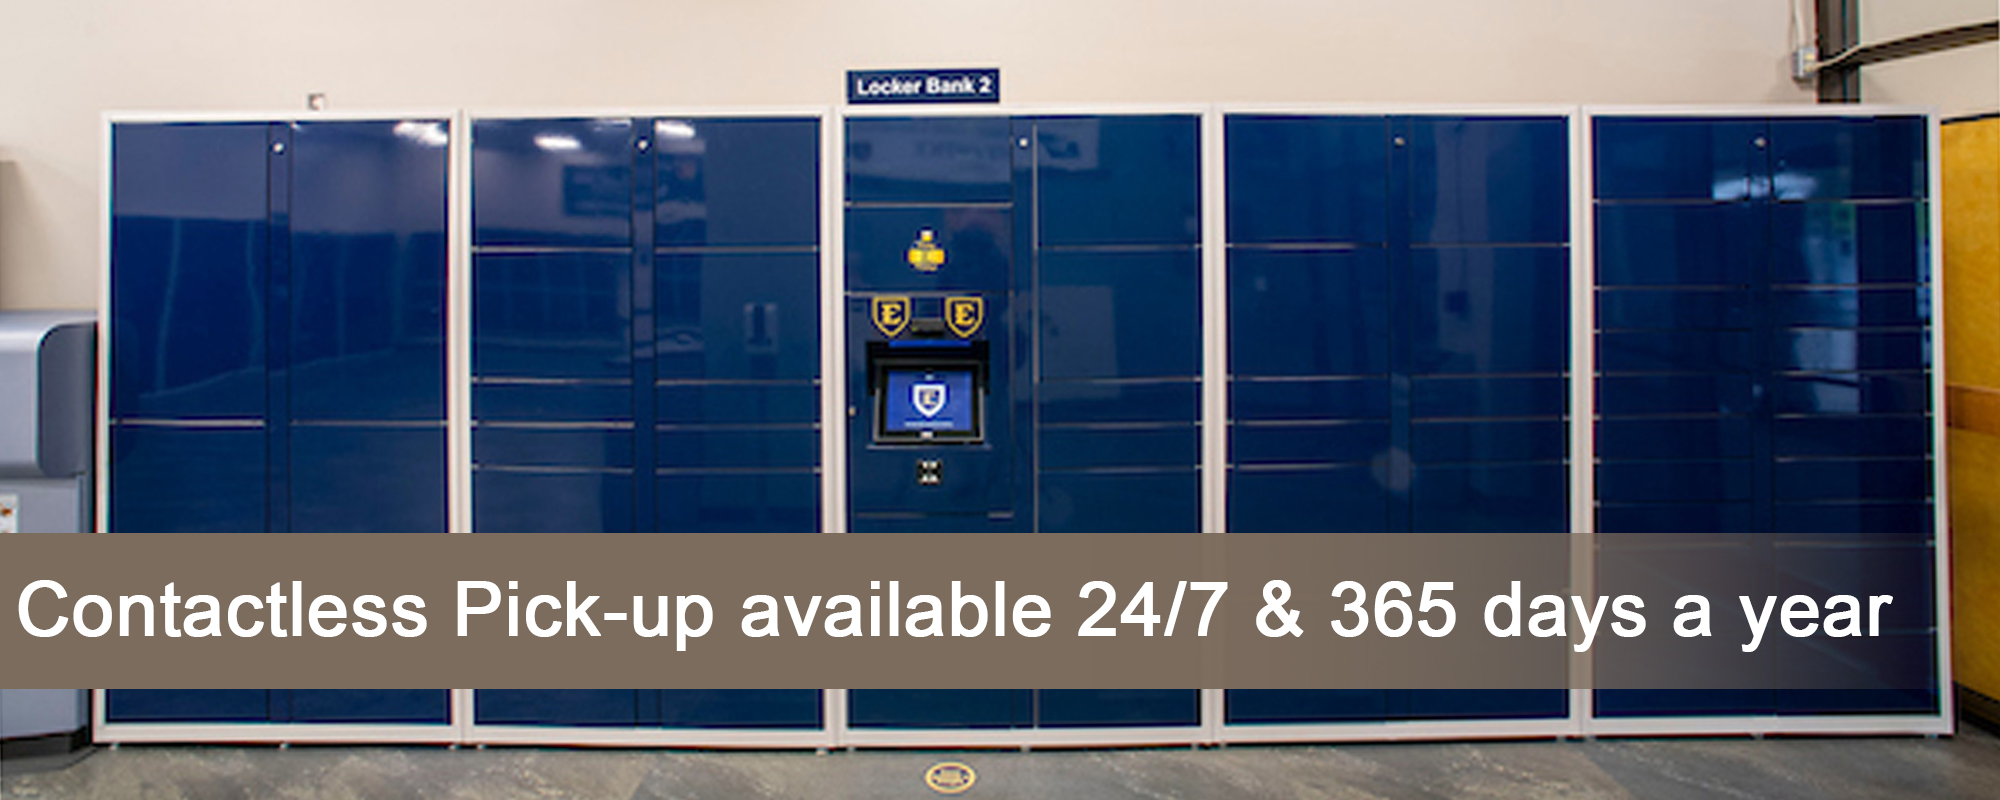 Contactless Pick-up available 24/7 and 365 days a year